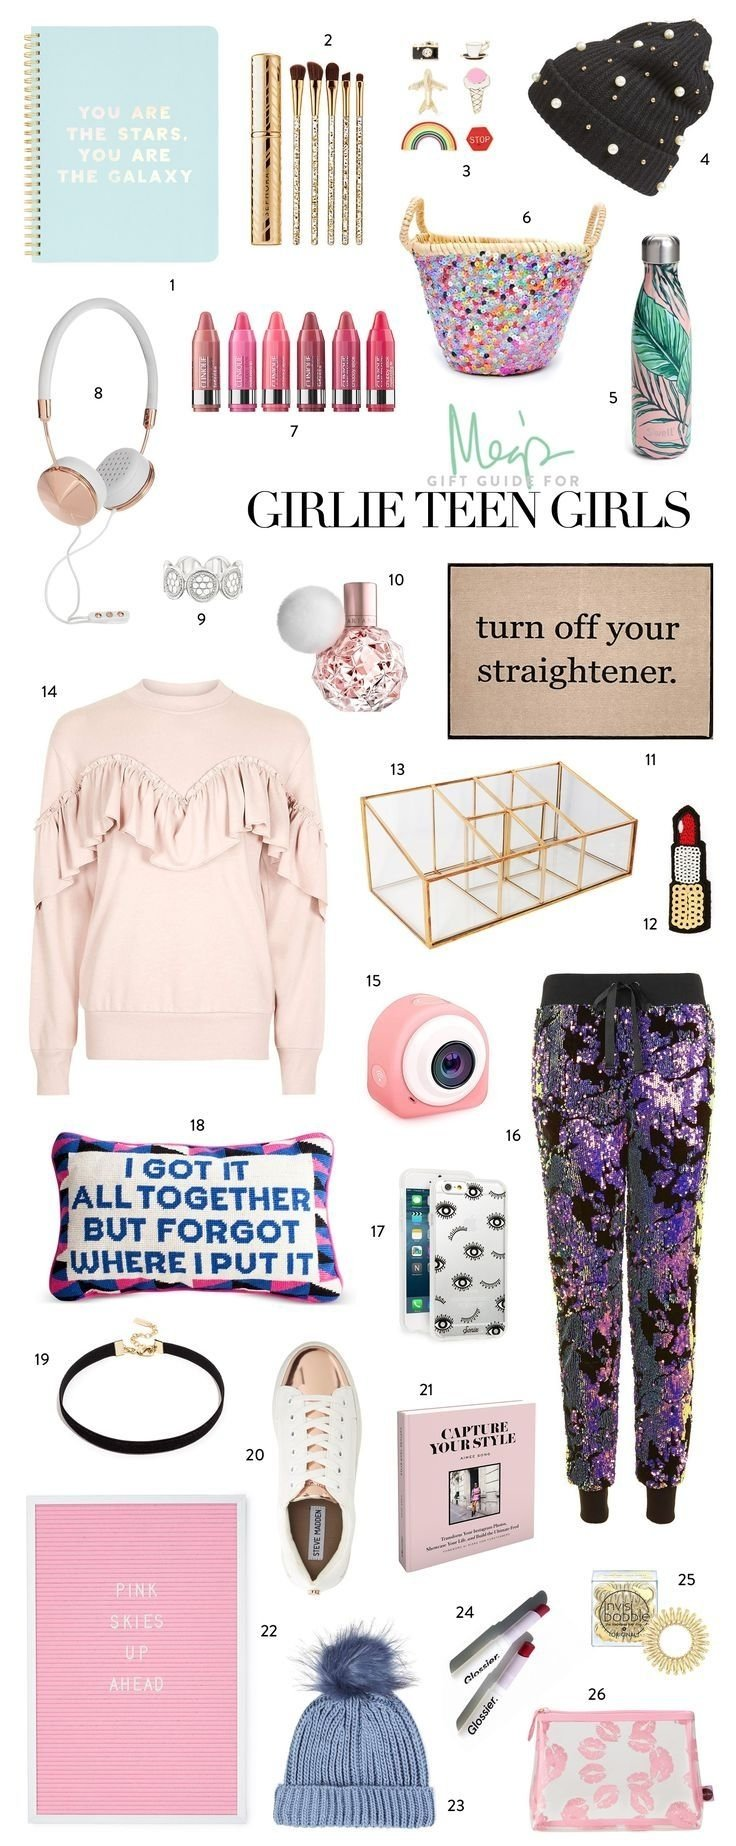 10 Famous Gift Ideas For 15 Yr Old Girl holiday gift guide girlie teen girls holiday gift guide teen 11